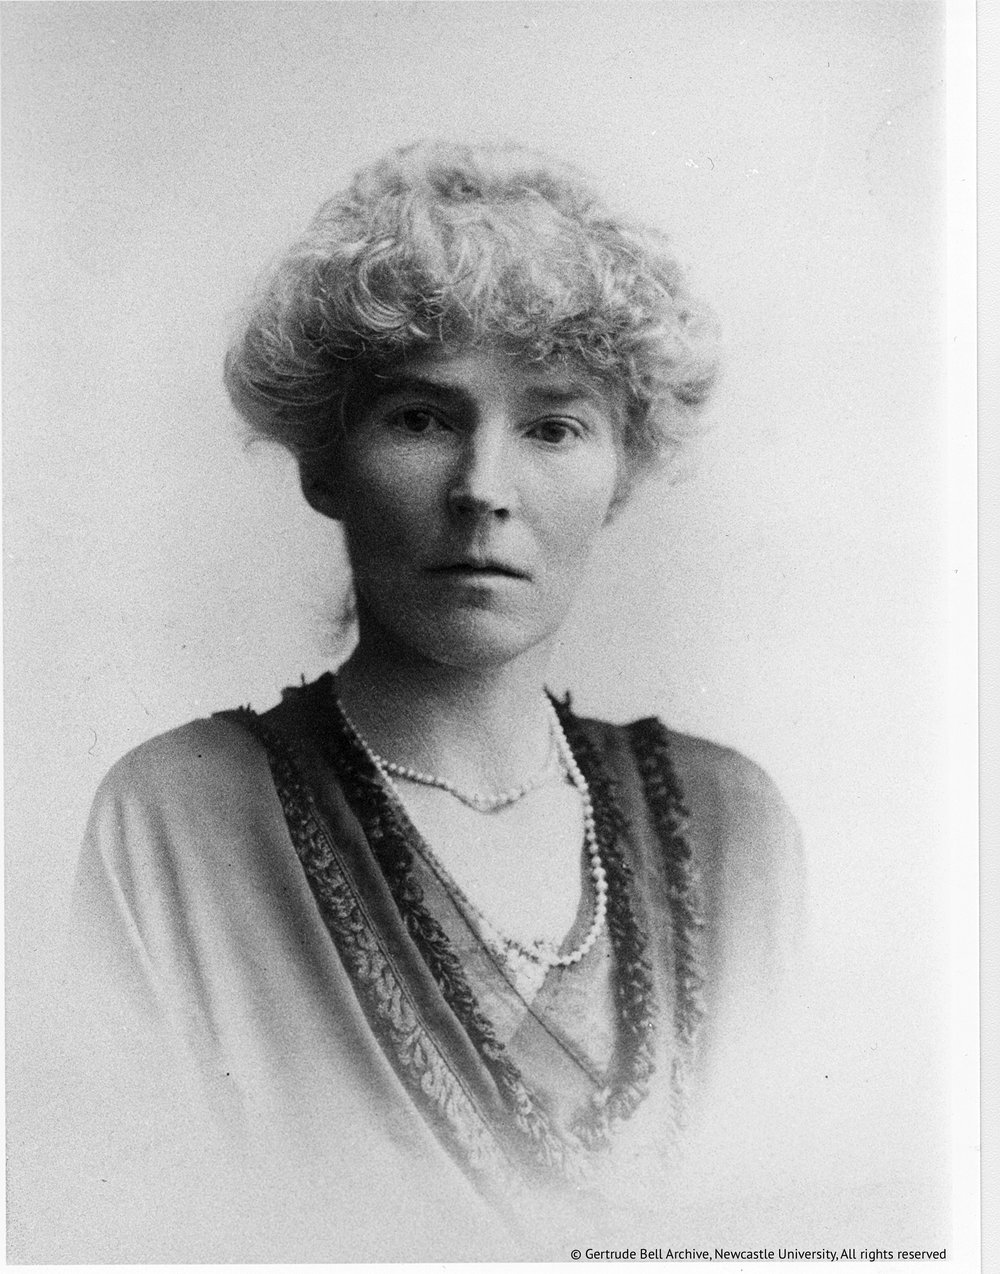 Gertrude Bell in 1921. Courtesy Letters from Baghdad/Gertrude Bell Archive